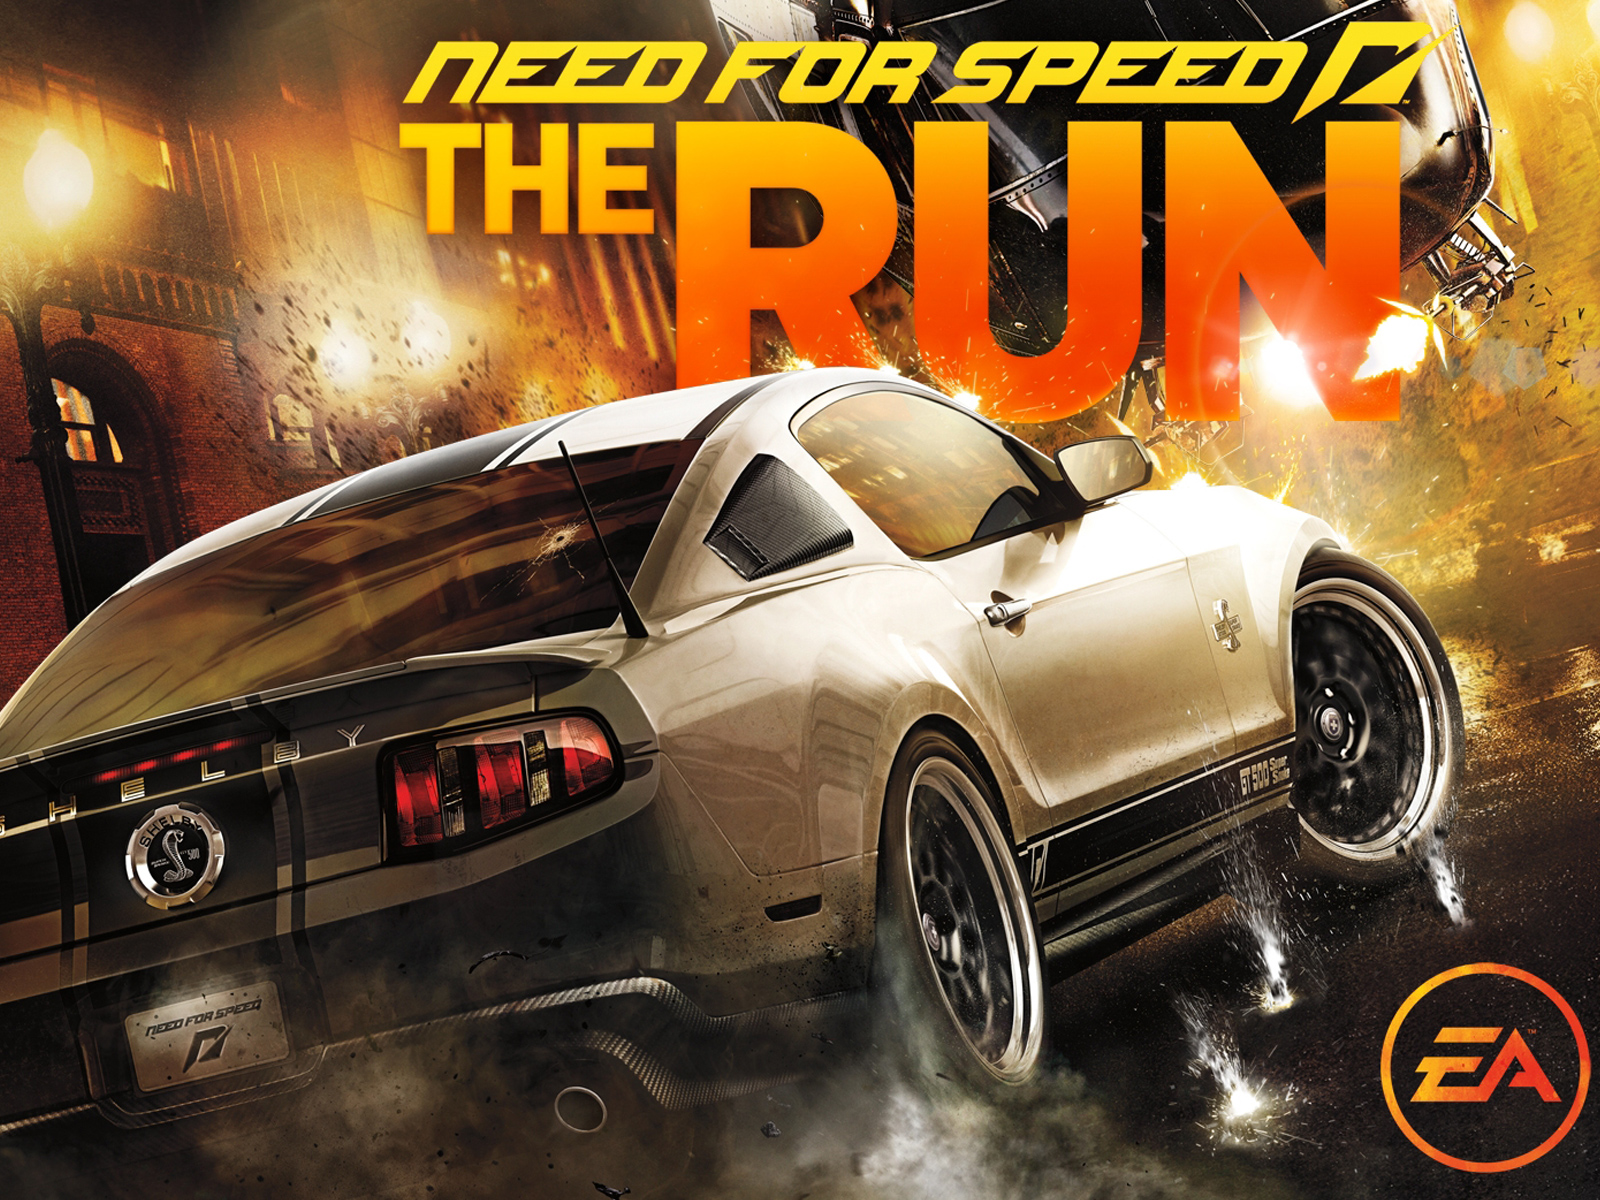 2011 Need for Speed The Run